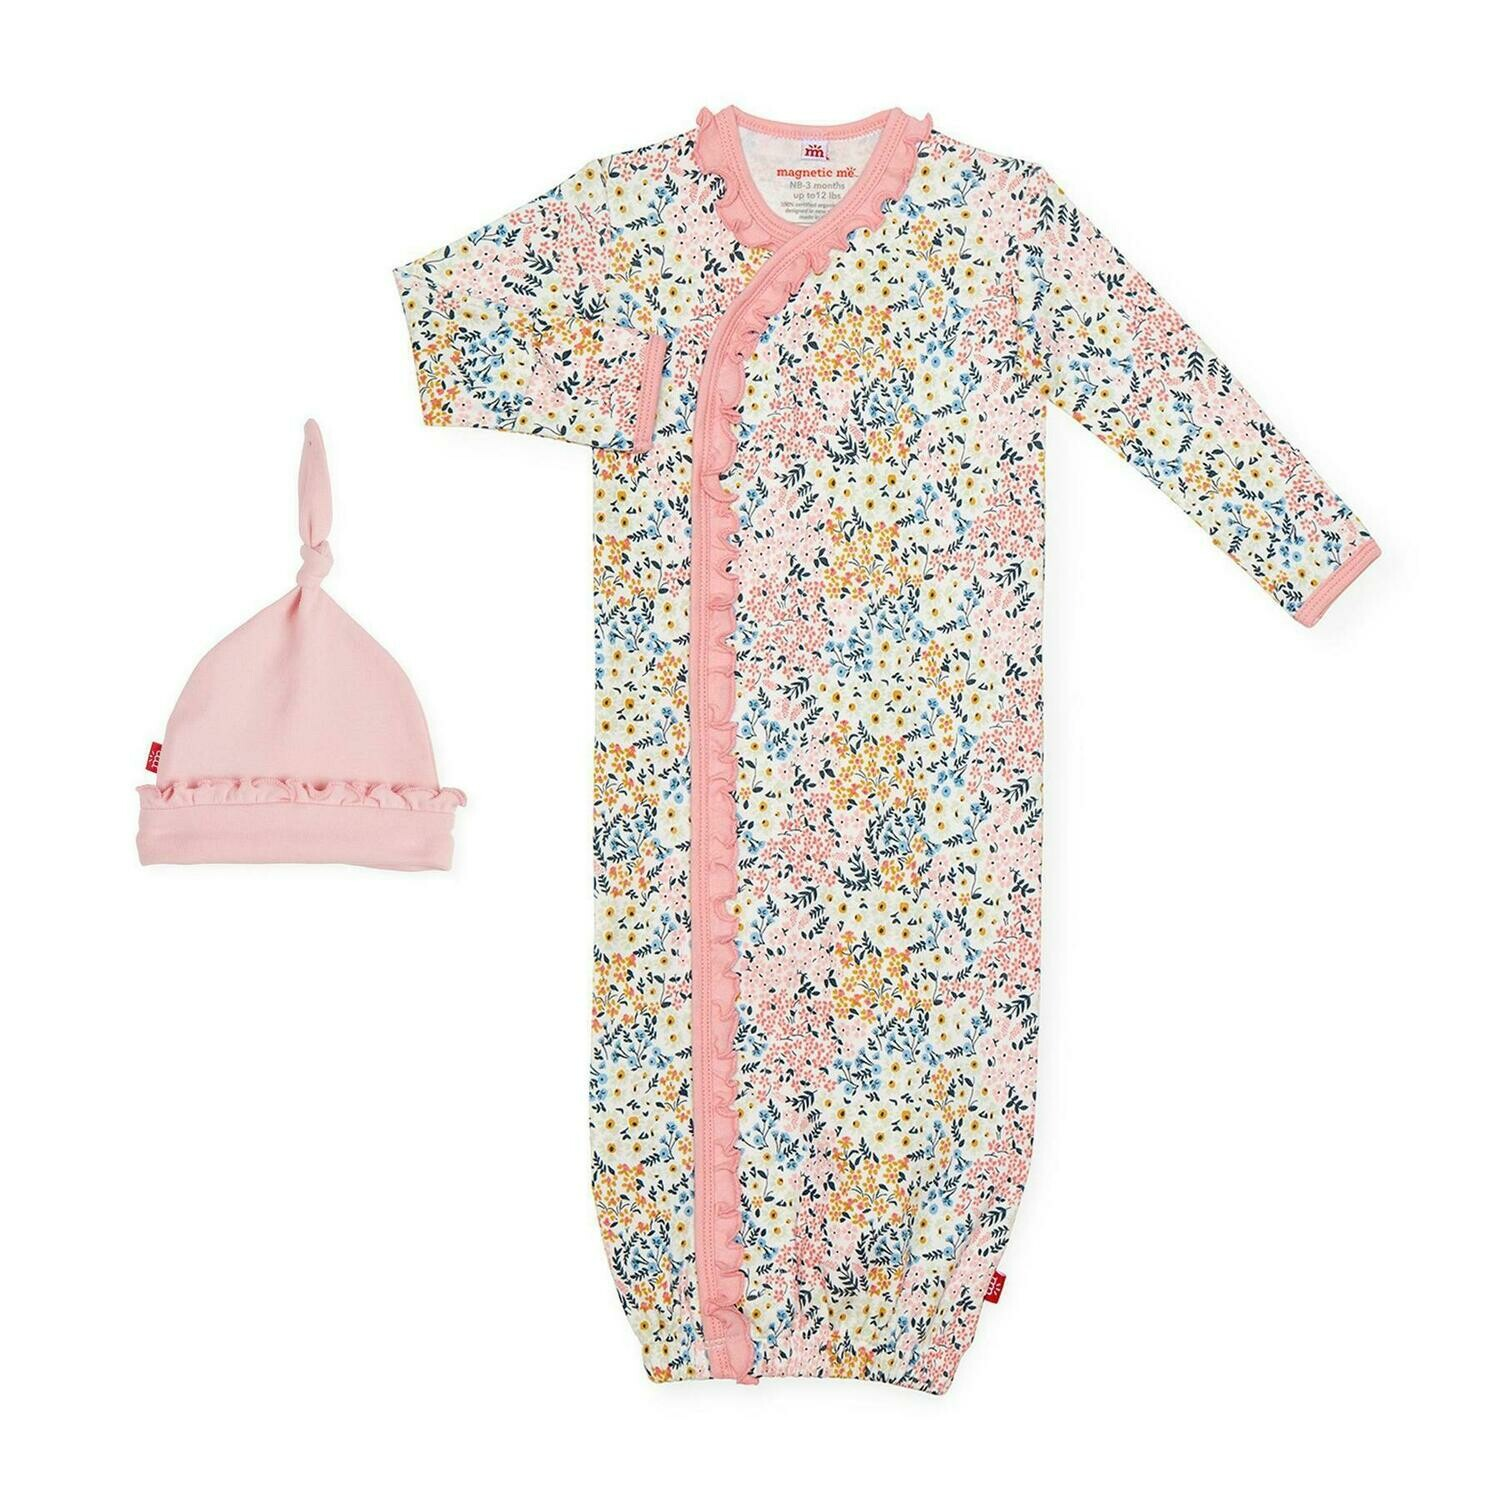 Chelsea Magnetic Gown + Hat (NB-3M)